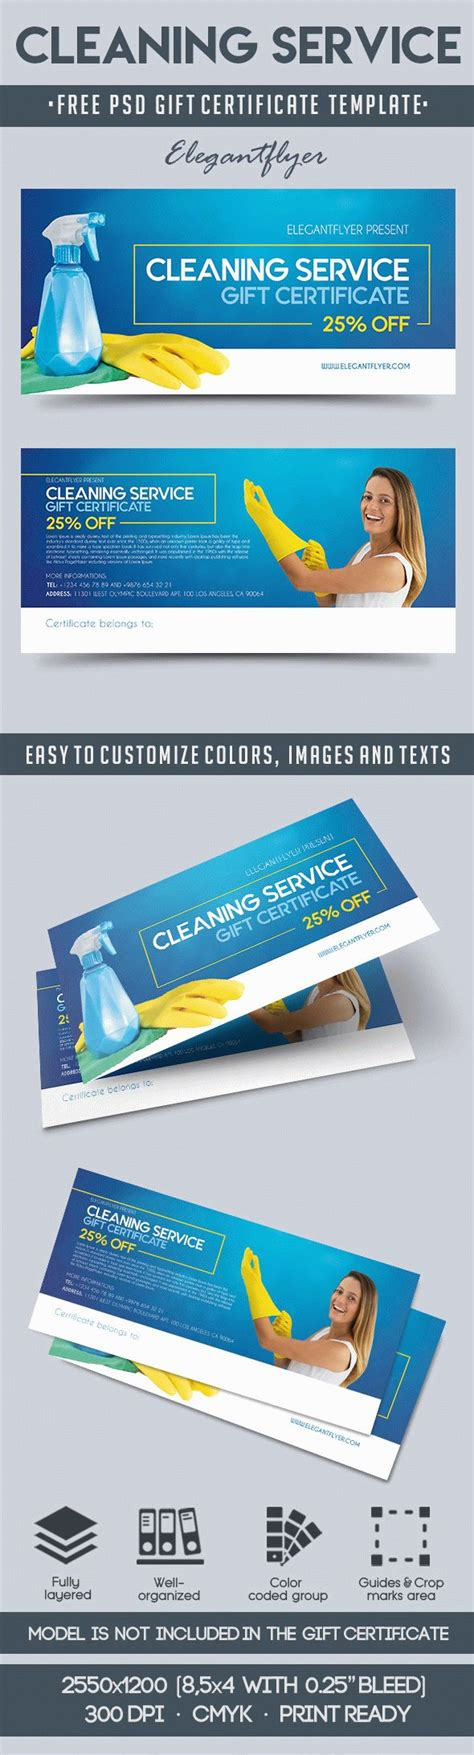 Cleaning Services Bi Fold Template By Elegantflyer Cleaning Service Free Gift Certificate Psd Template By